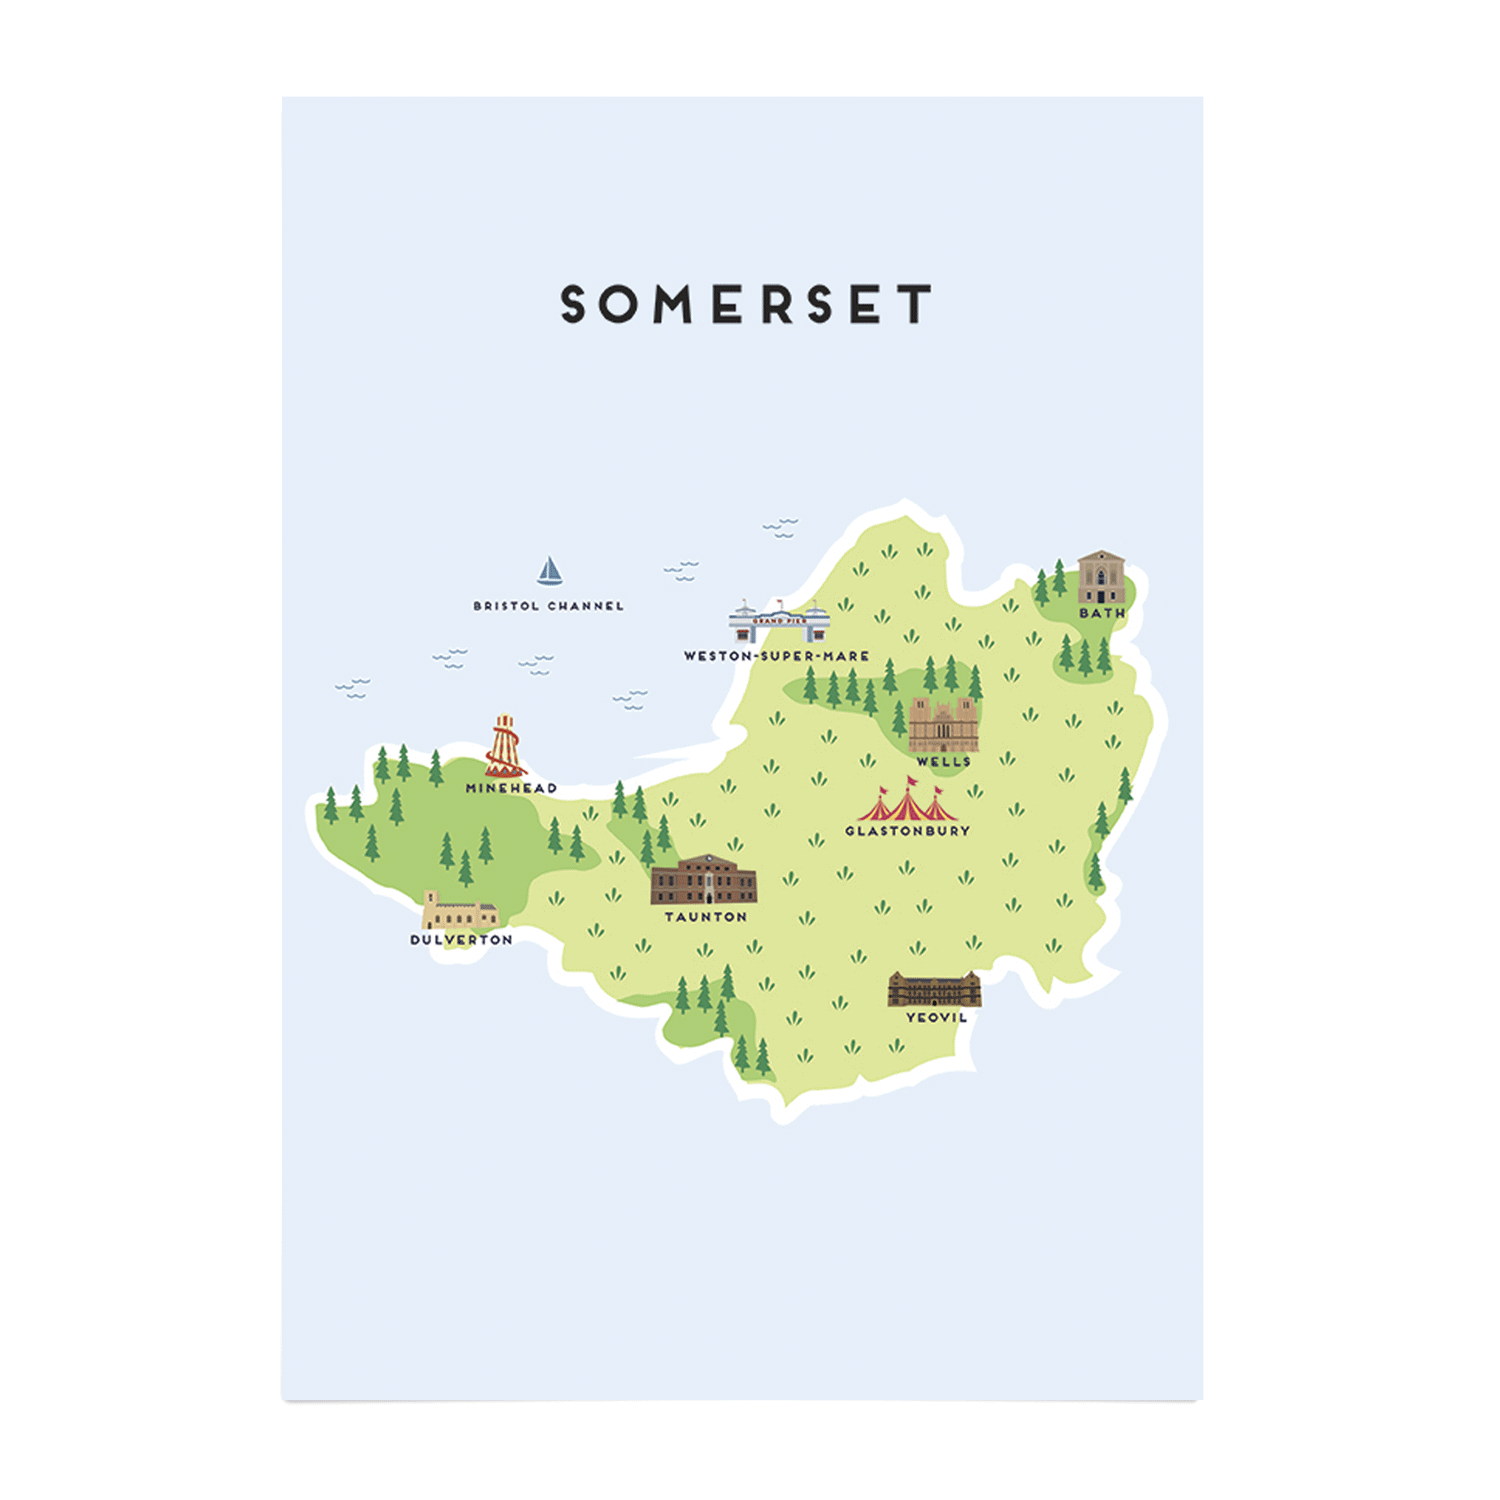 Somerset Illustrated Map Bath Art Prints Place in Print